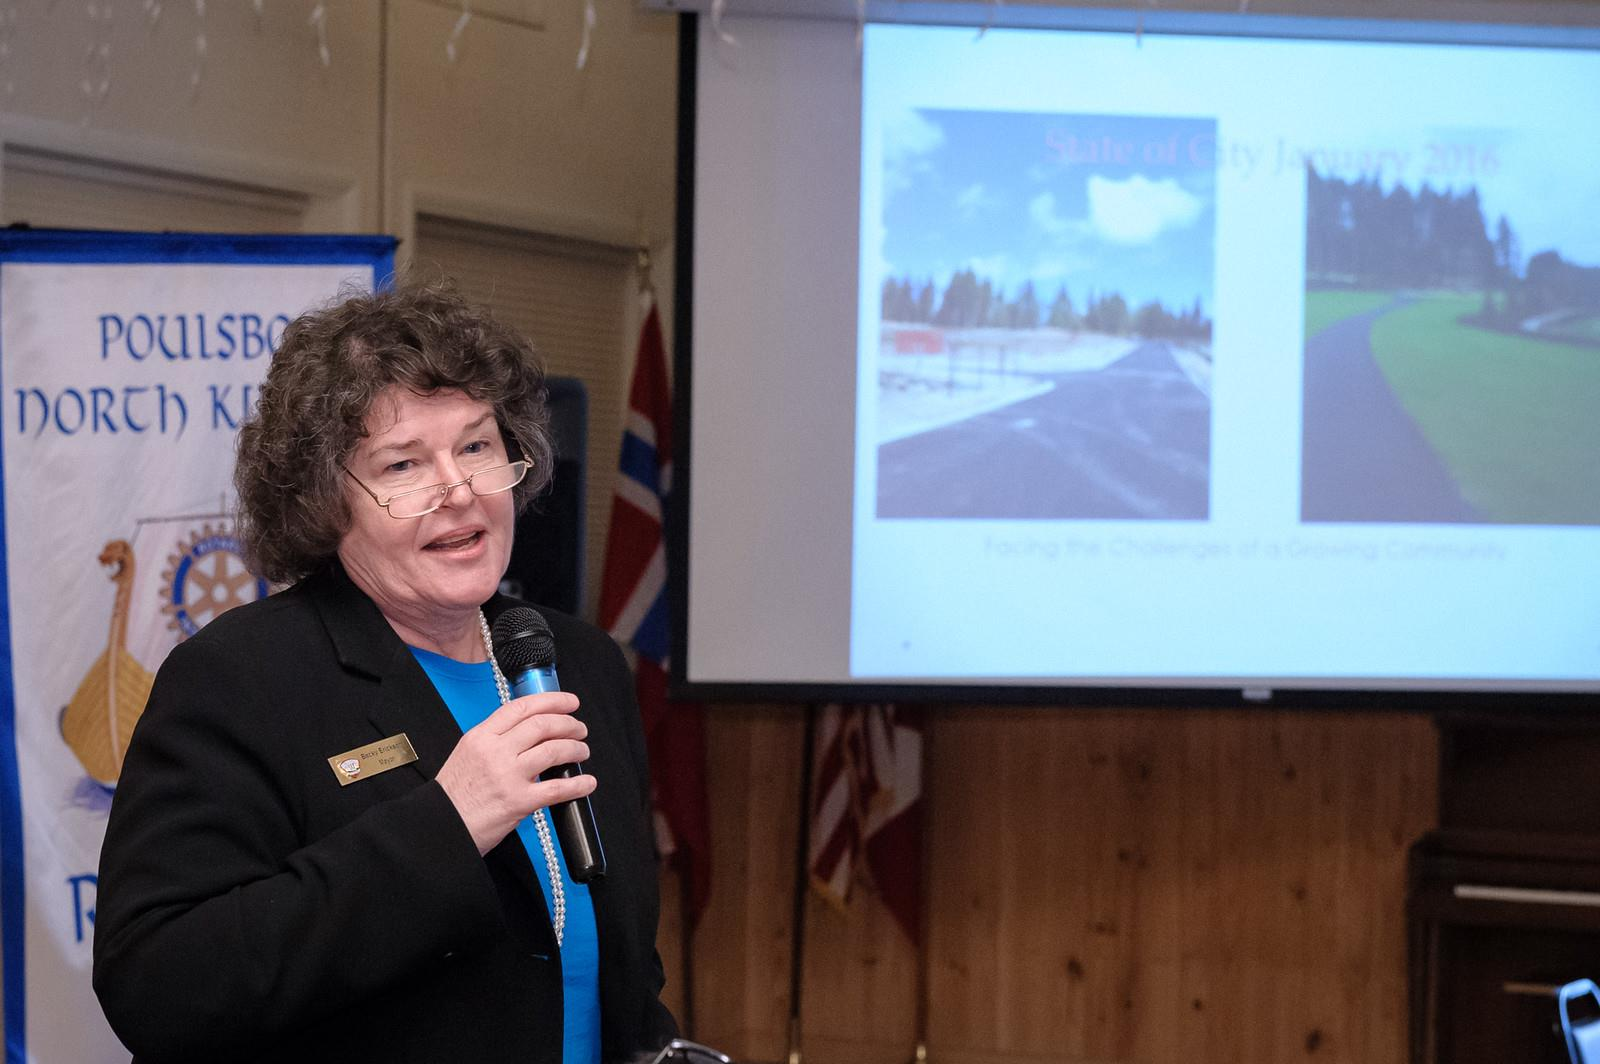 Mayor Erickson presents State of the City of Poulsbo